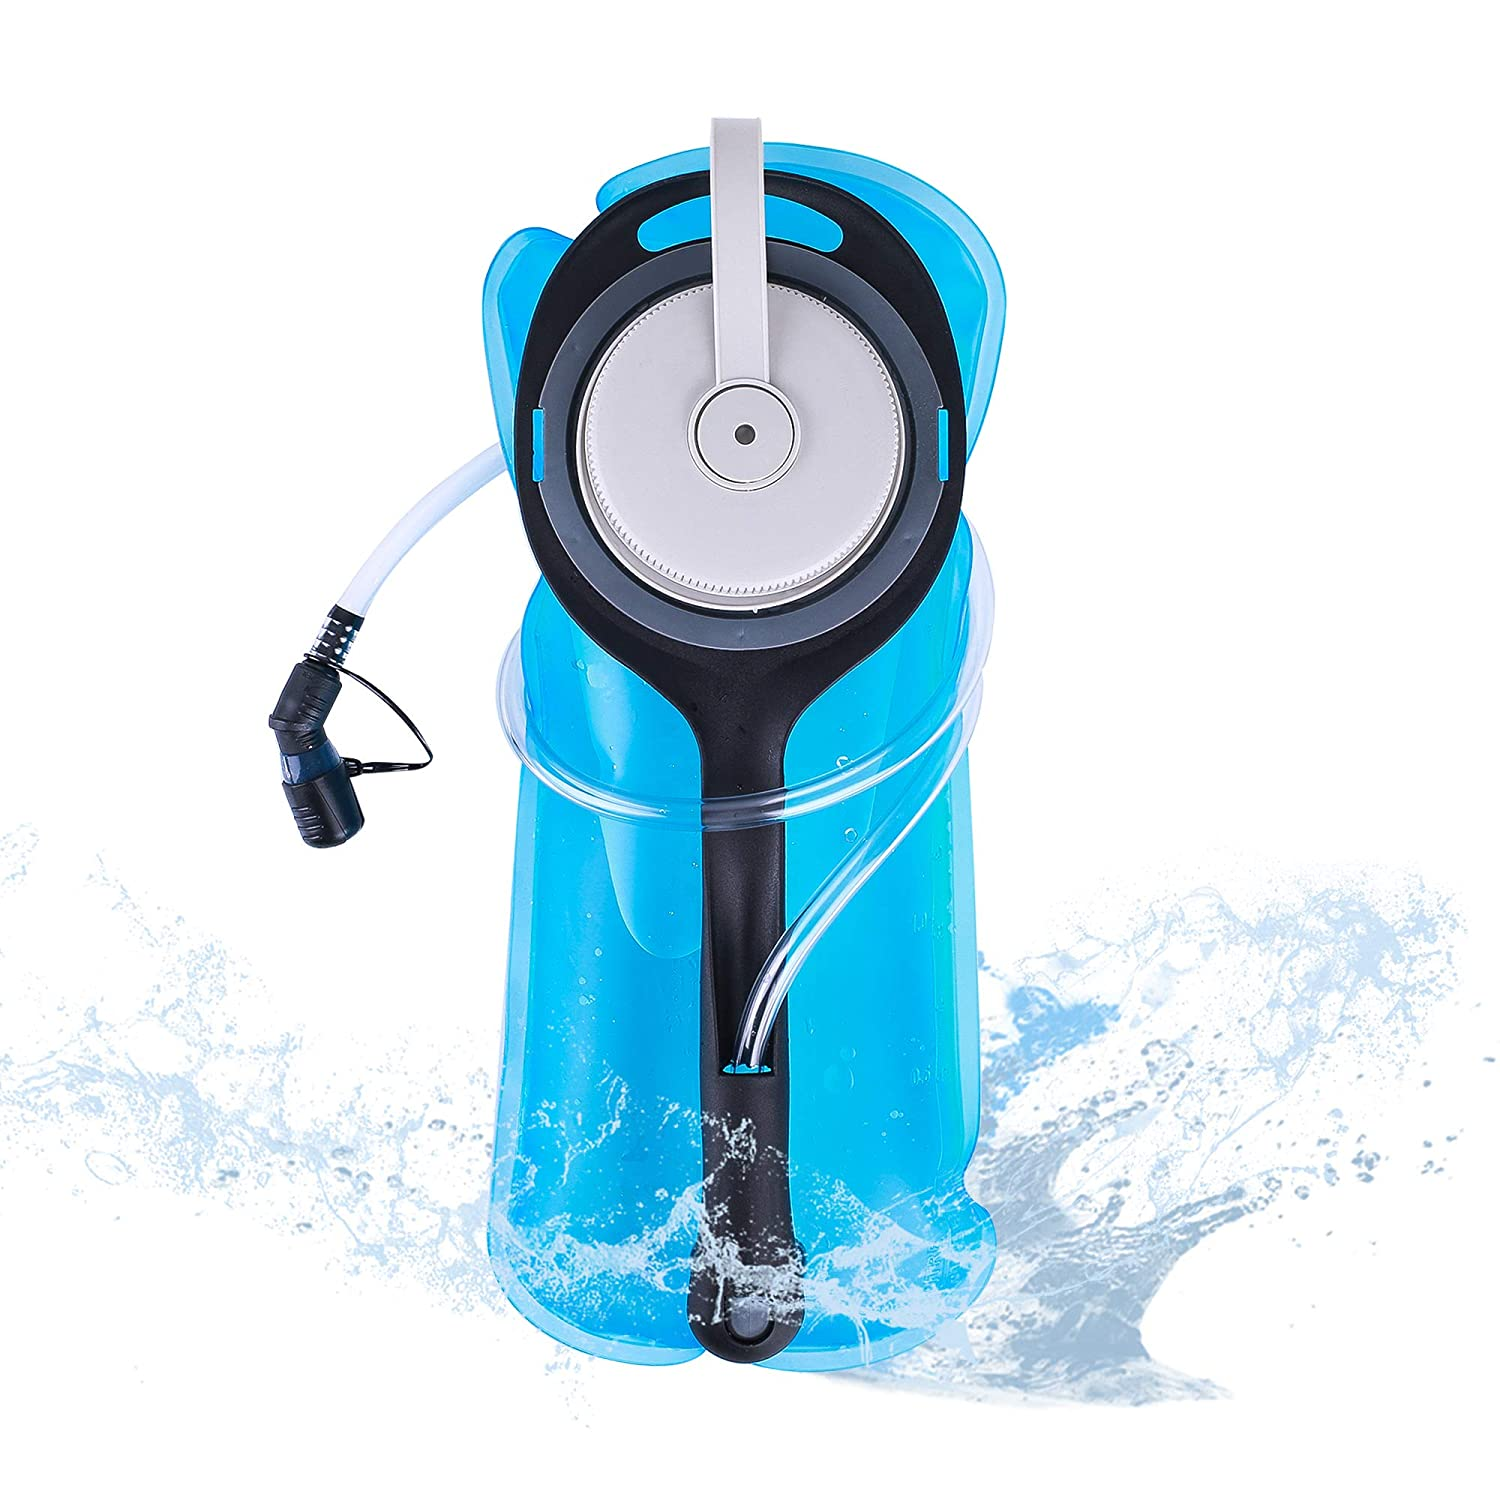 Upgrade Hydration Bladder, 2L Water Bladder BPA Free Military Class Leakproof Water Reservoir with Wide Opening Self-Locking Valve for Hiking Climbing Cycling Running and Any Outdoor Sports